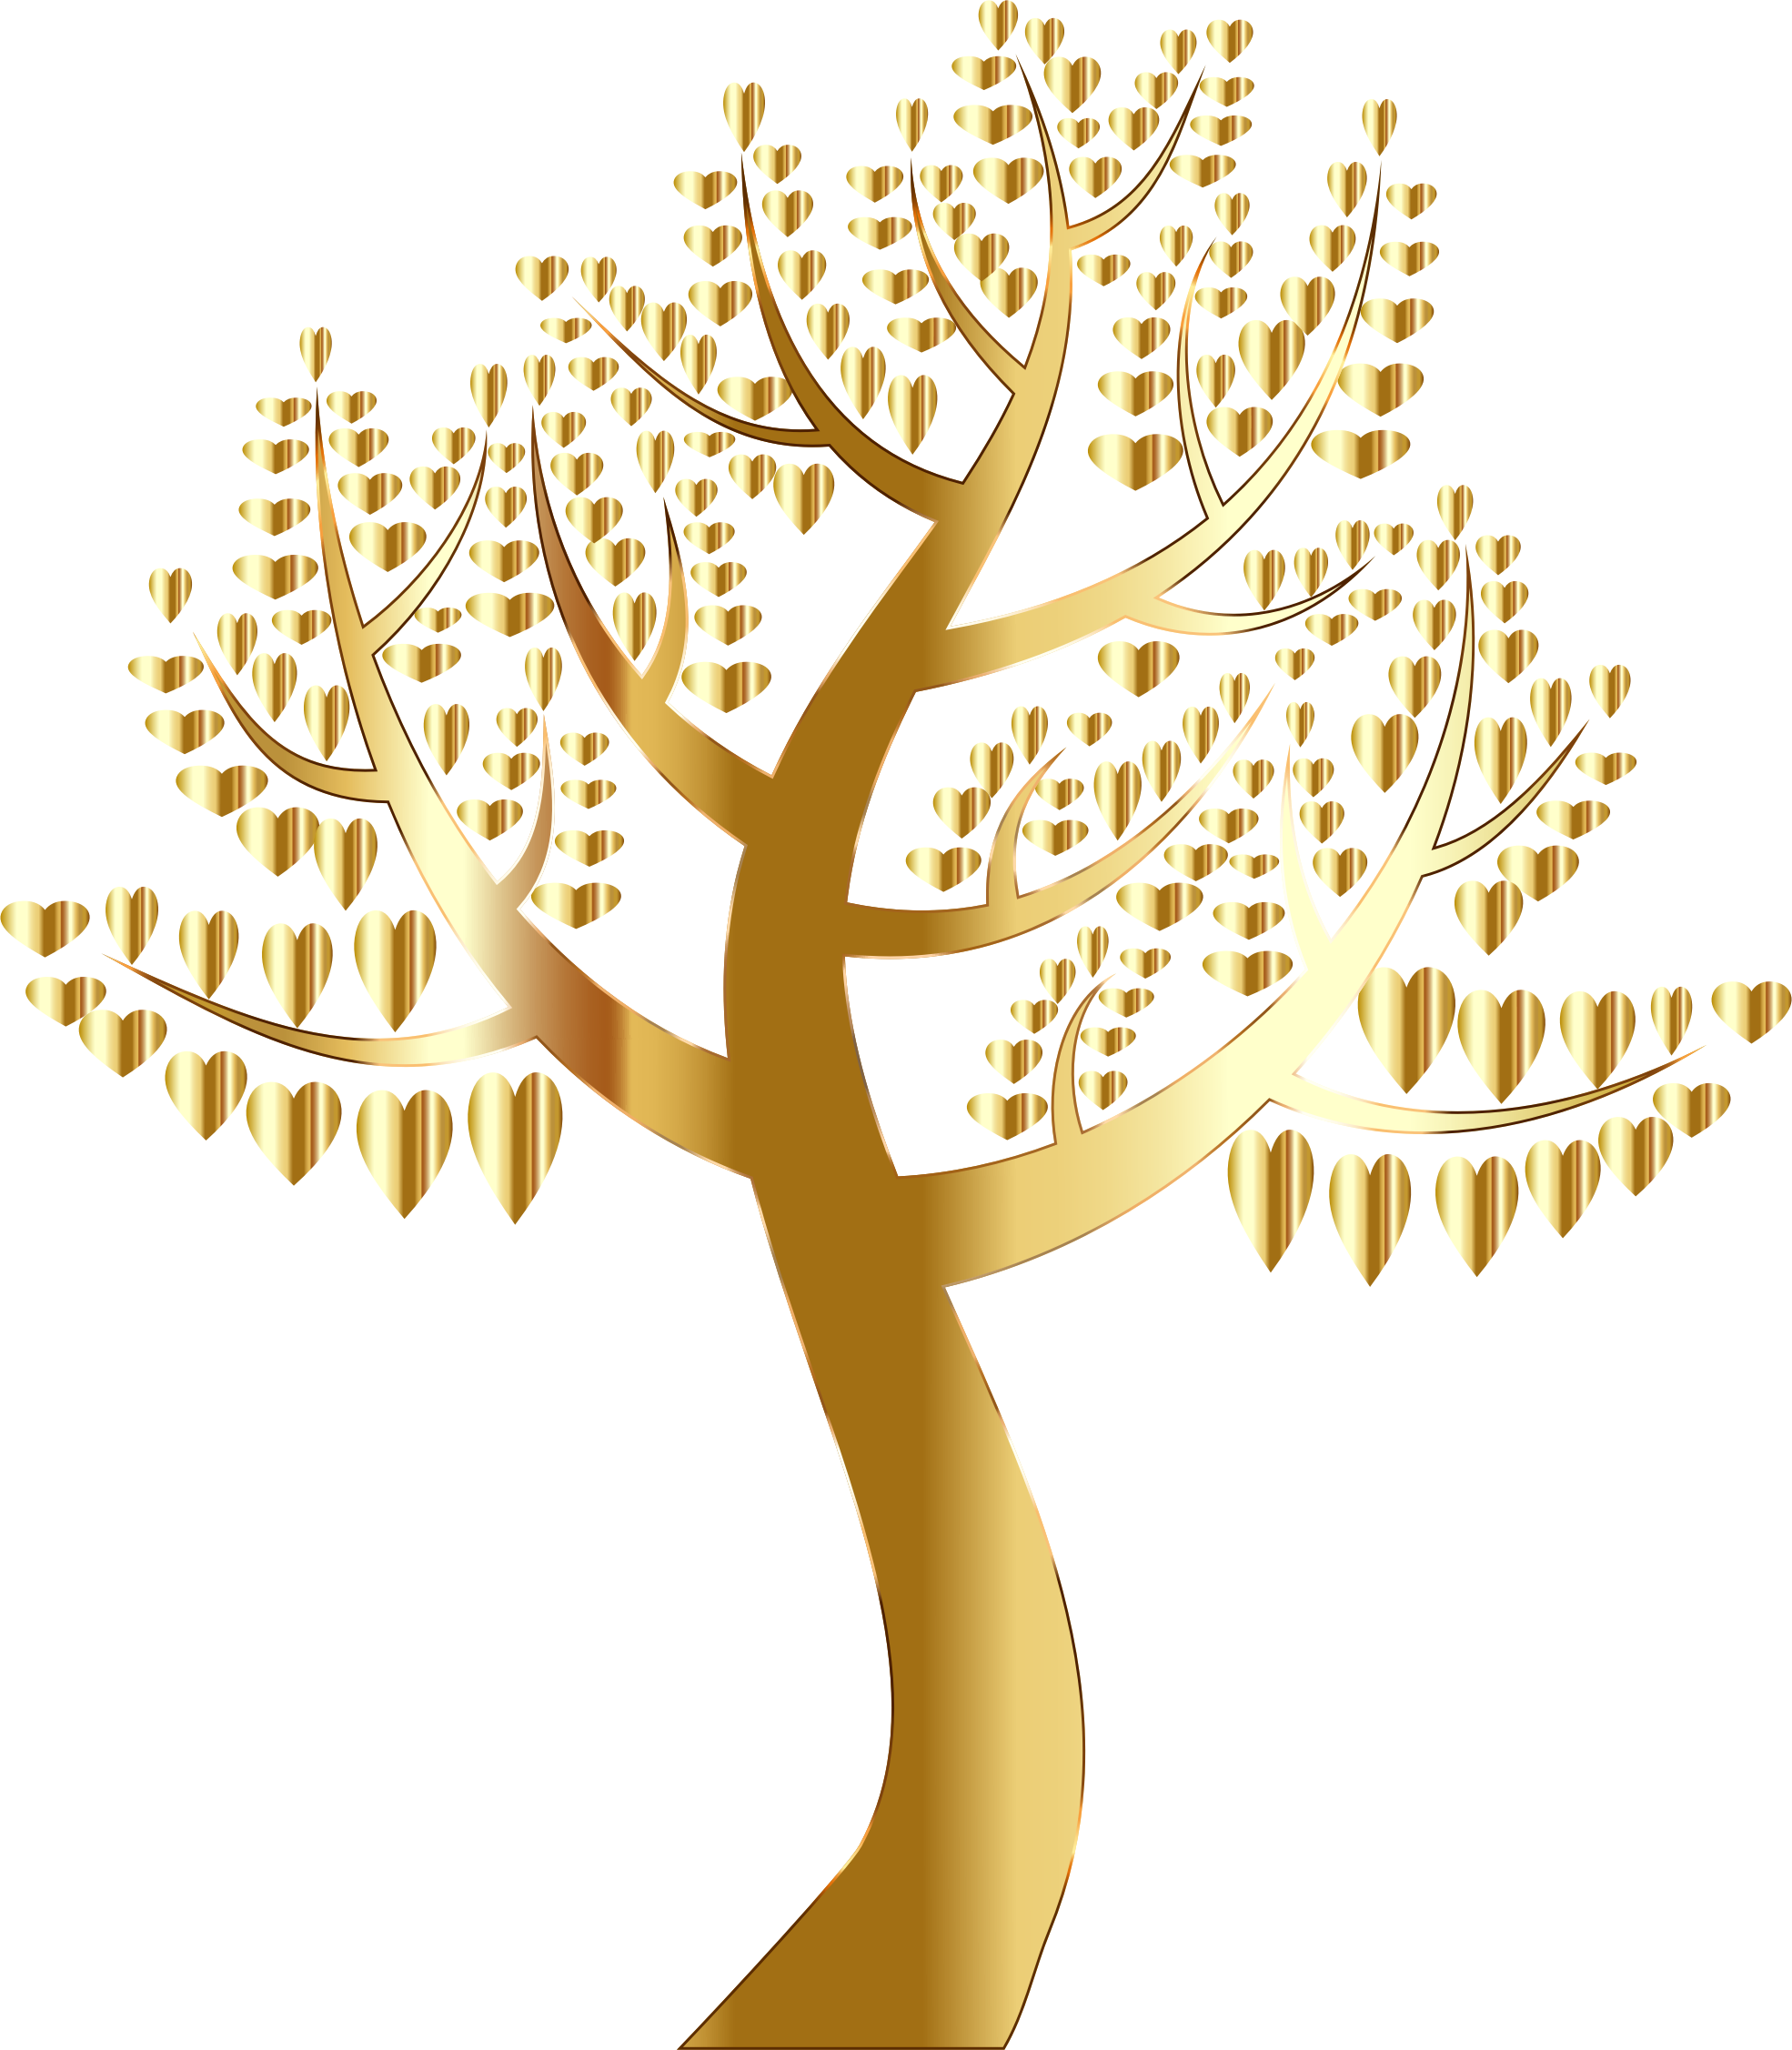 Hearts clipart tree. Simple no background big